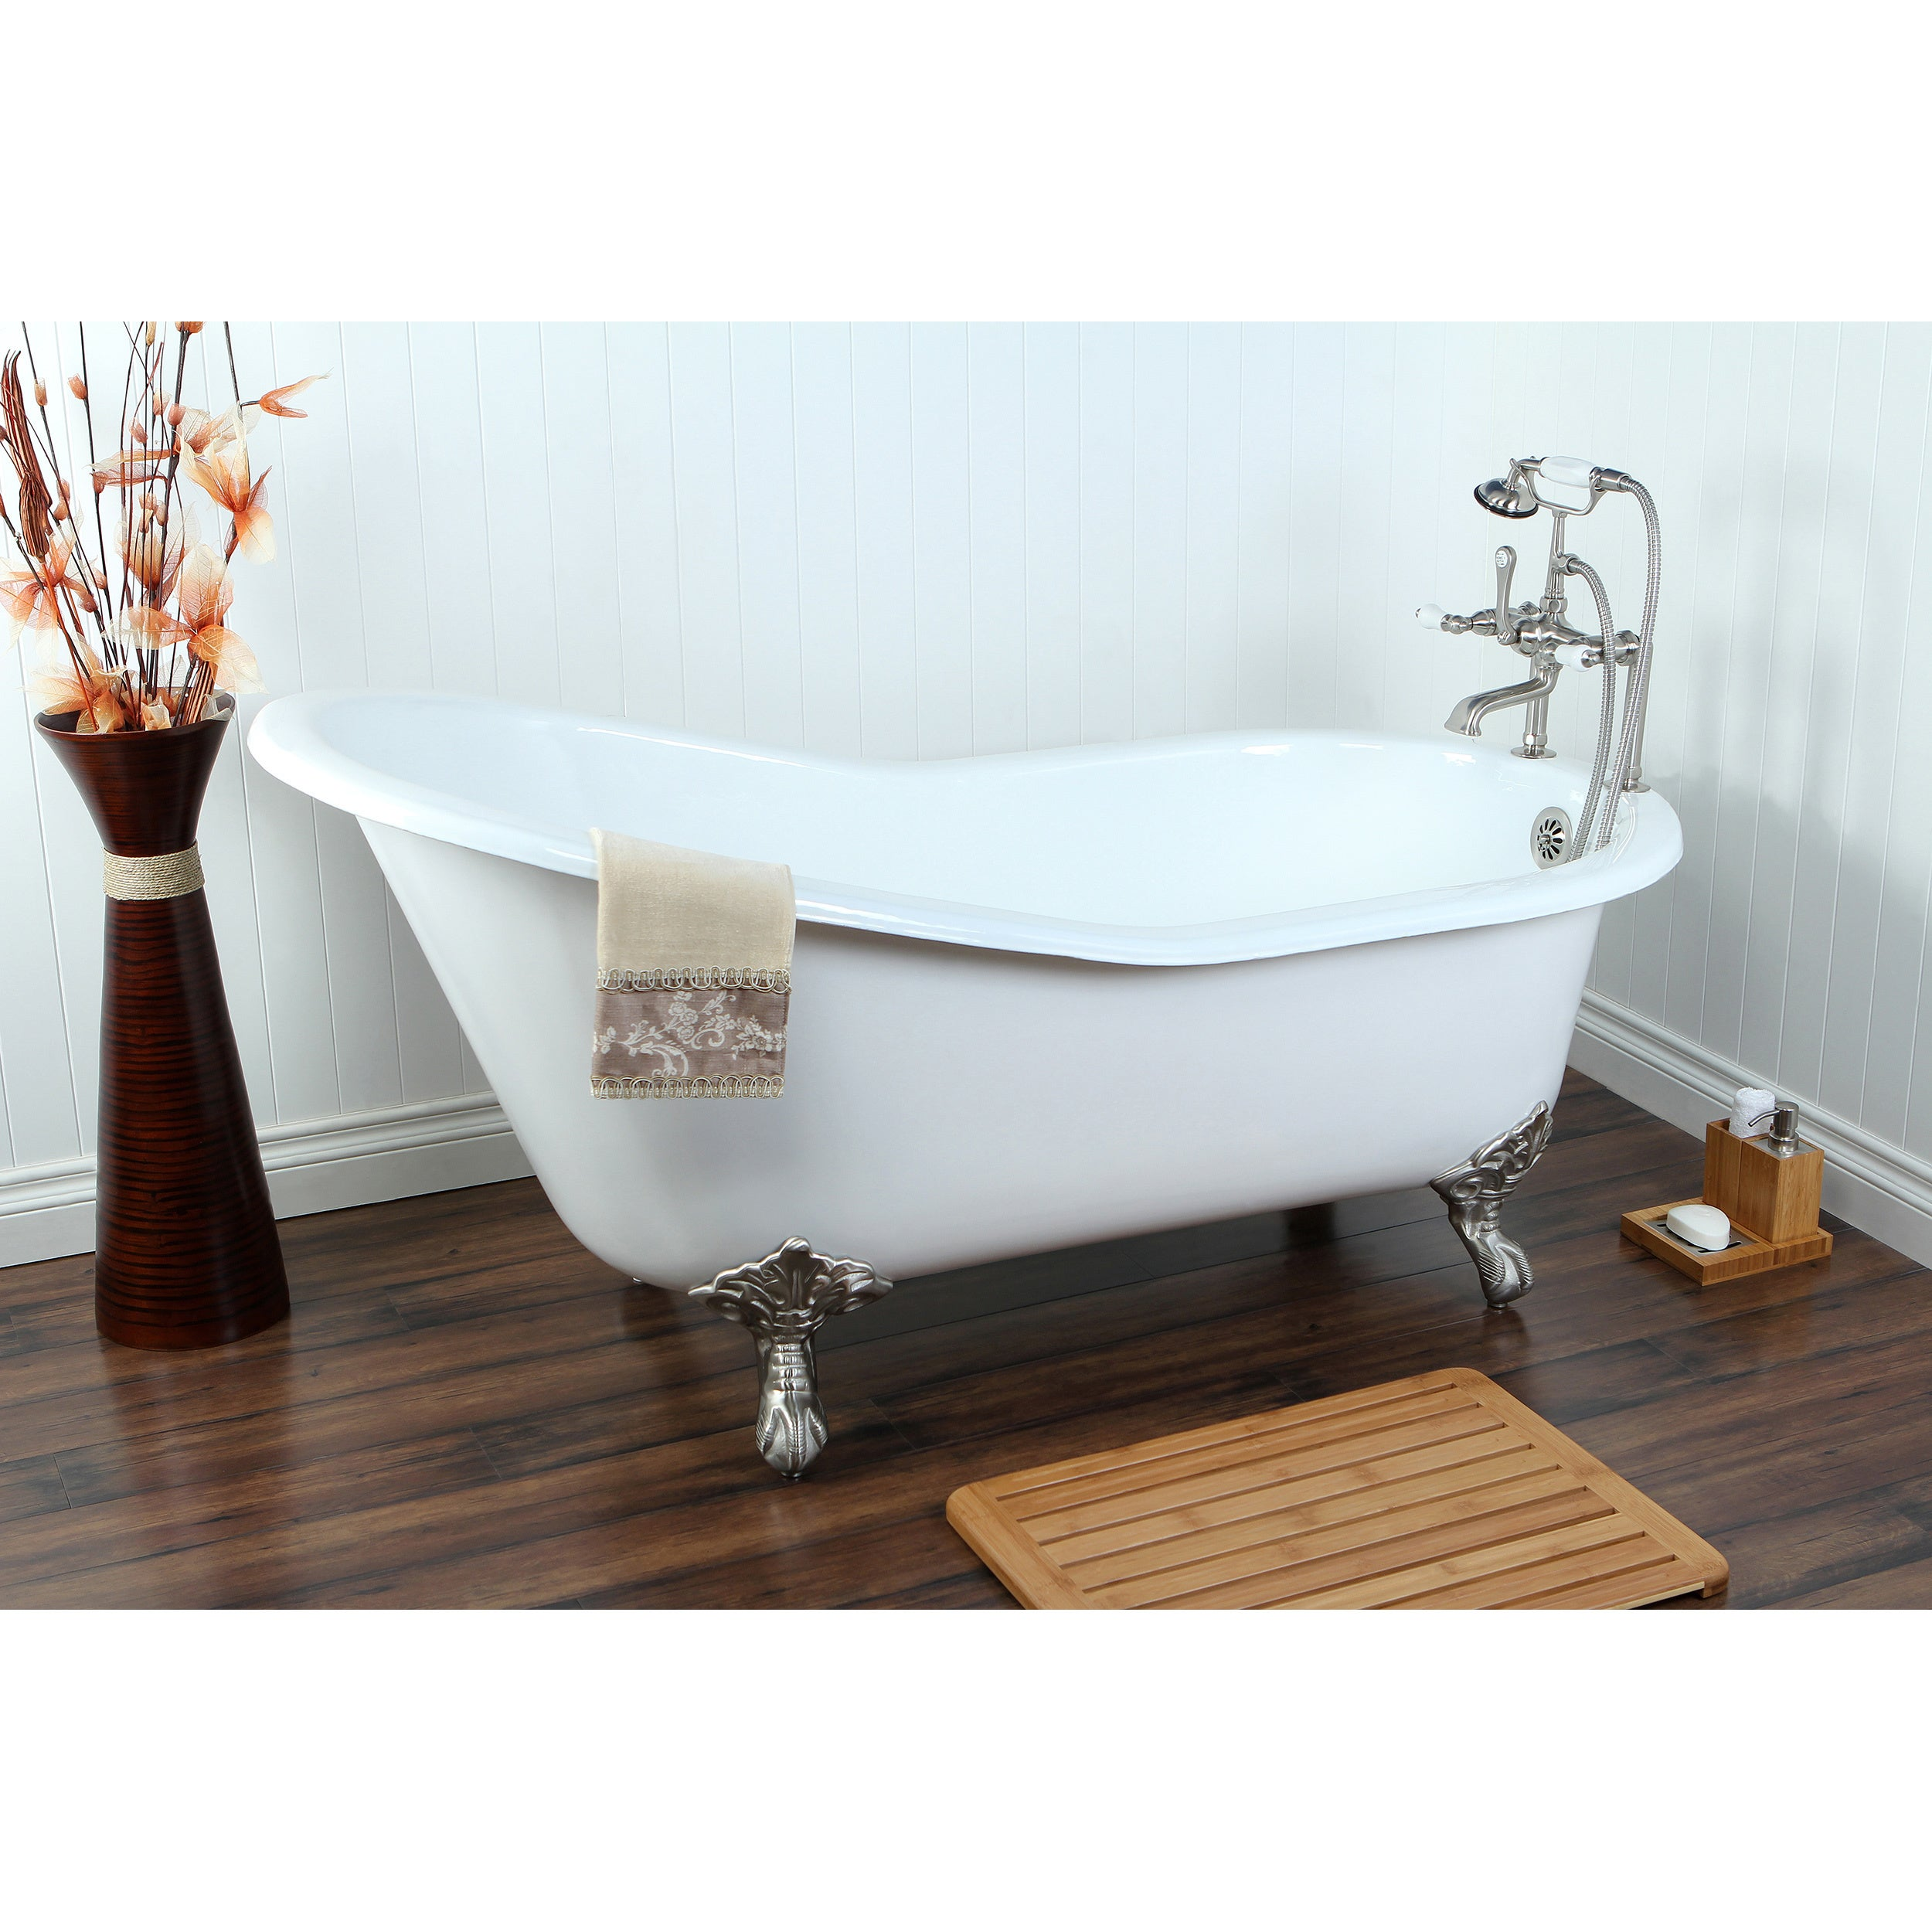 Shop Vintage Slipper 61-inch Cast-iron Clawfoot Tub with 7-inch ...